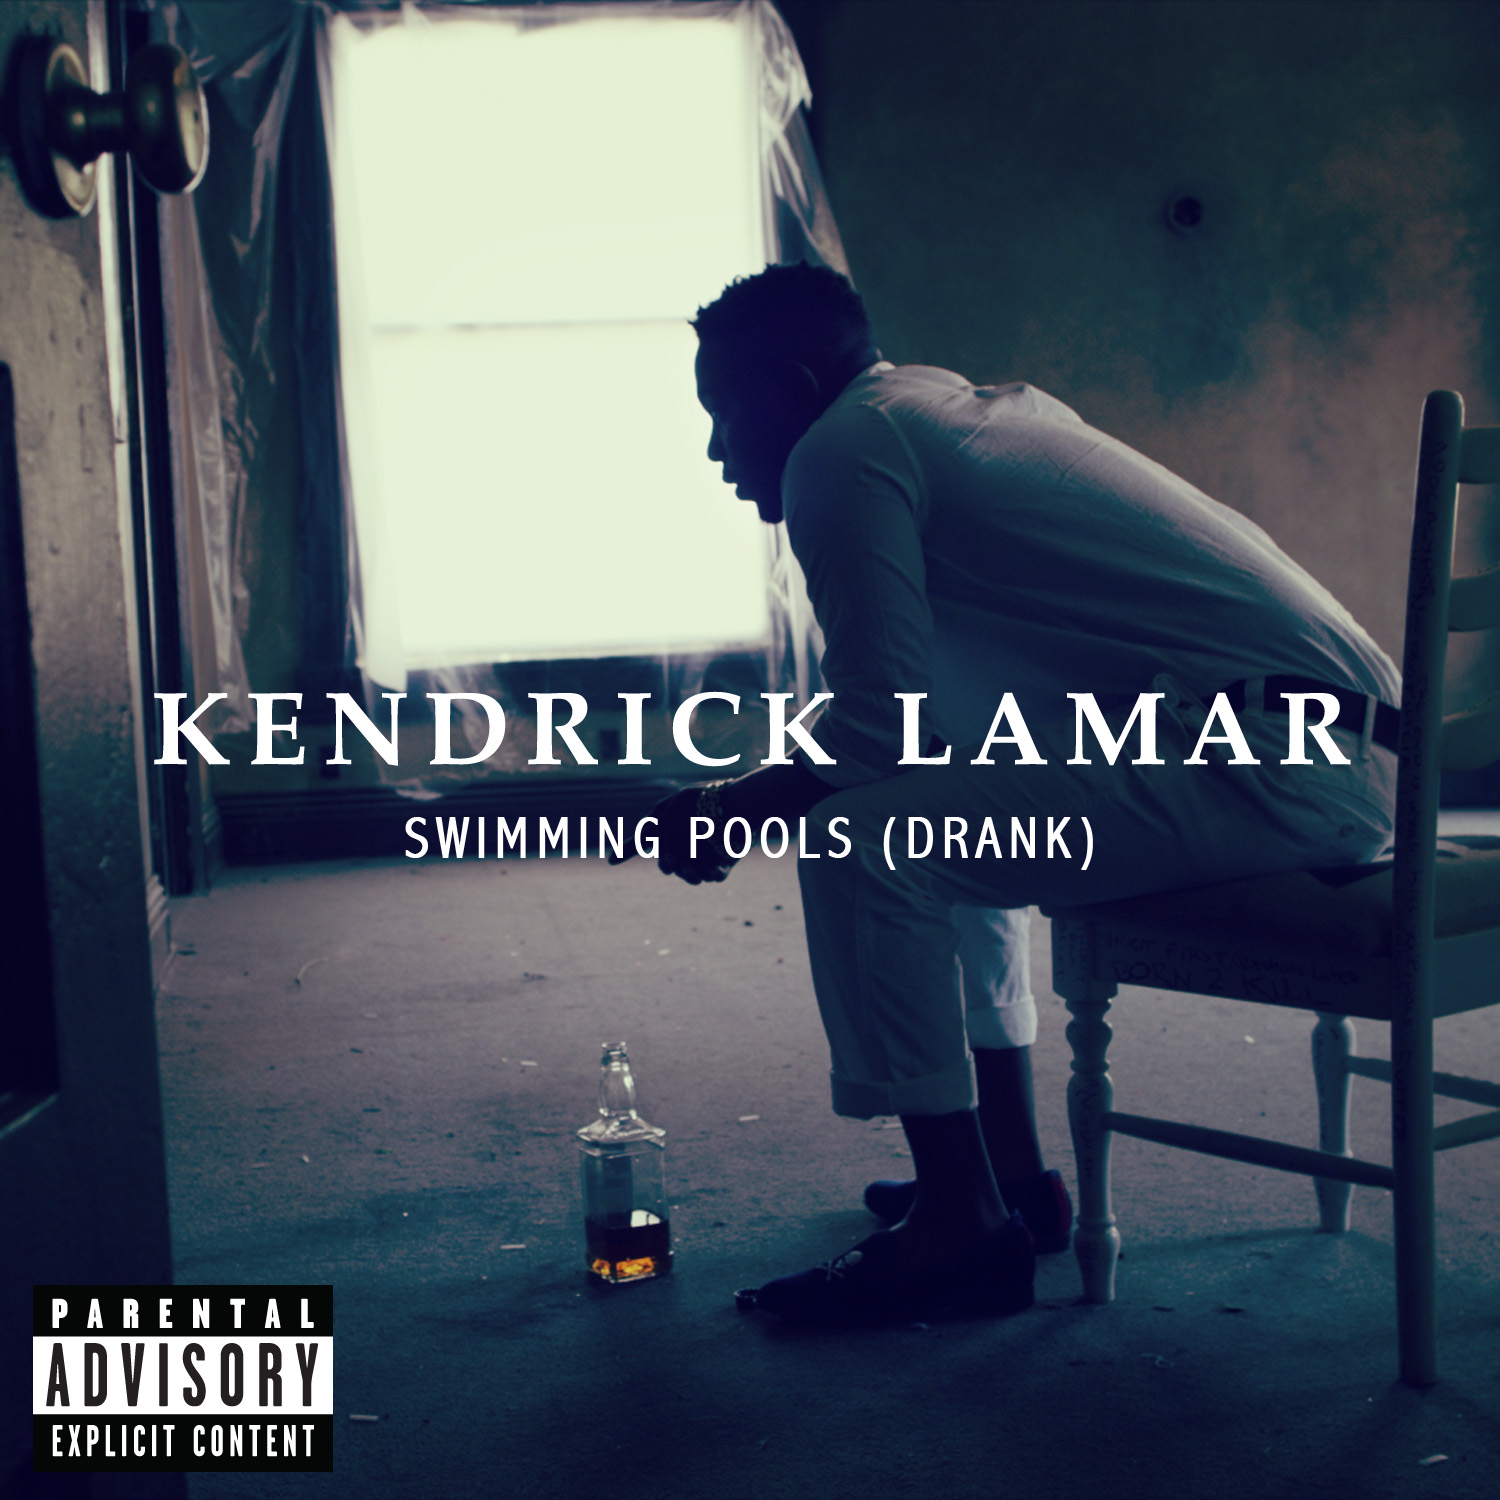 Kendrick lamar swimming pools drank produced by t minus new music speak to all for Swimming pool drank mp3 download